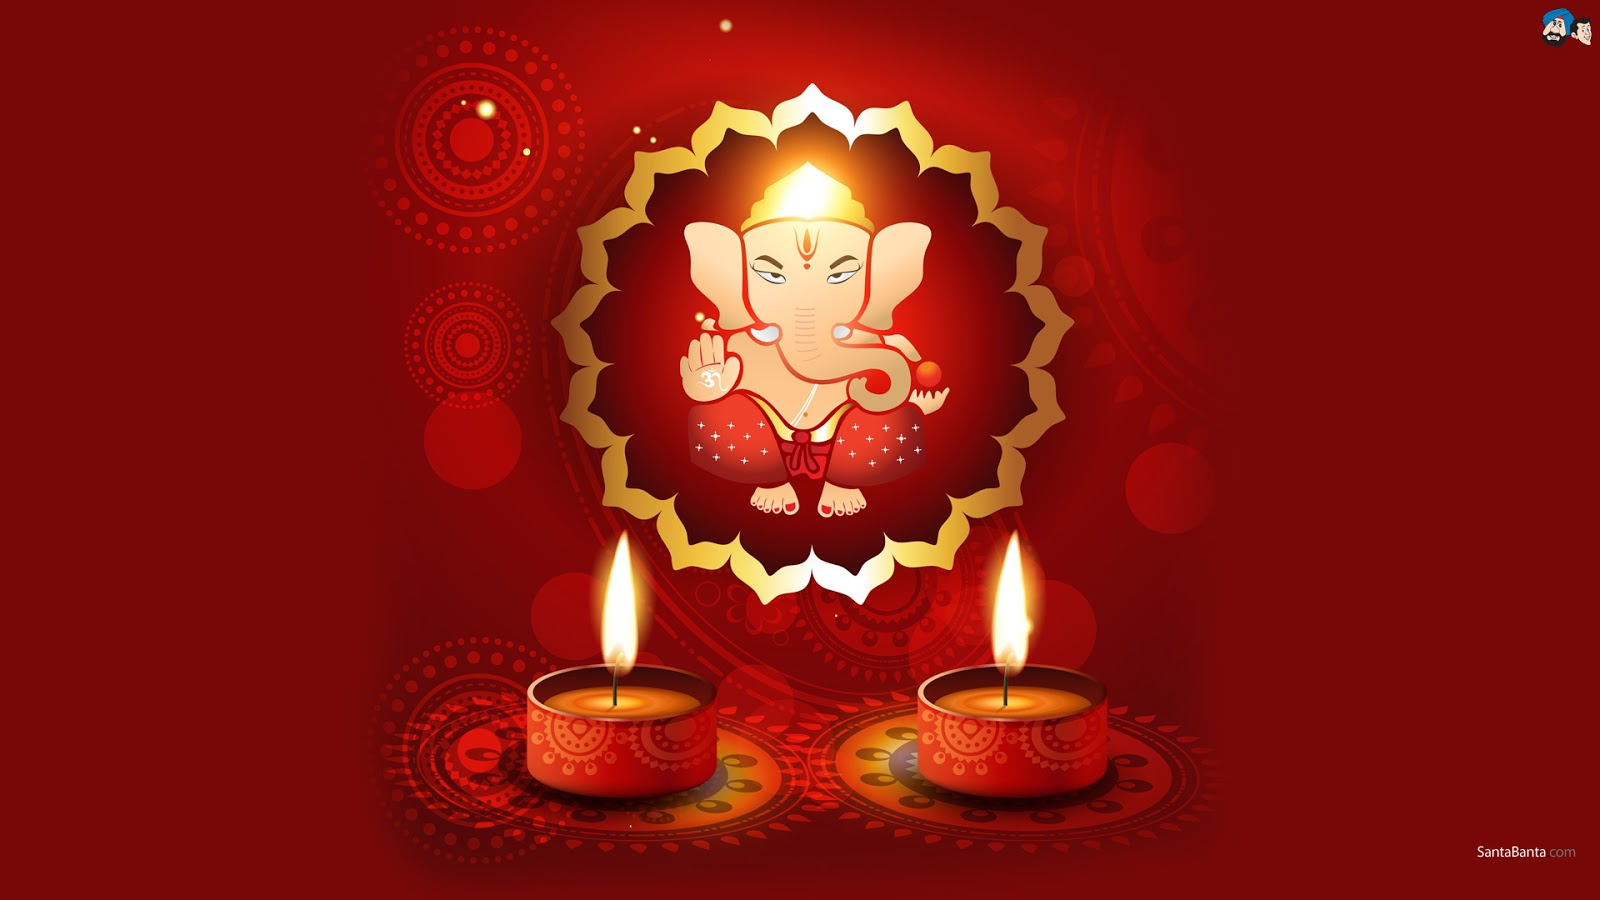 Ganesh Chaturthi Images, Wallpapers, Pictures in HD | Lord Ganesha HD ...